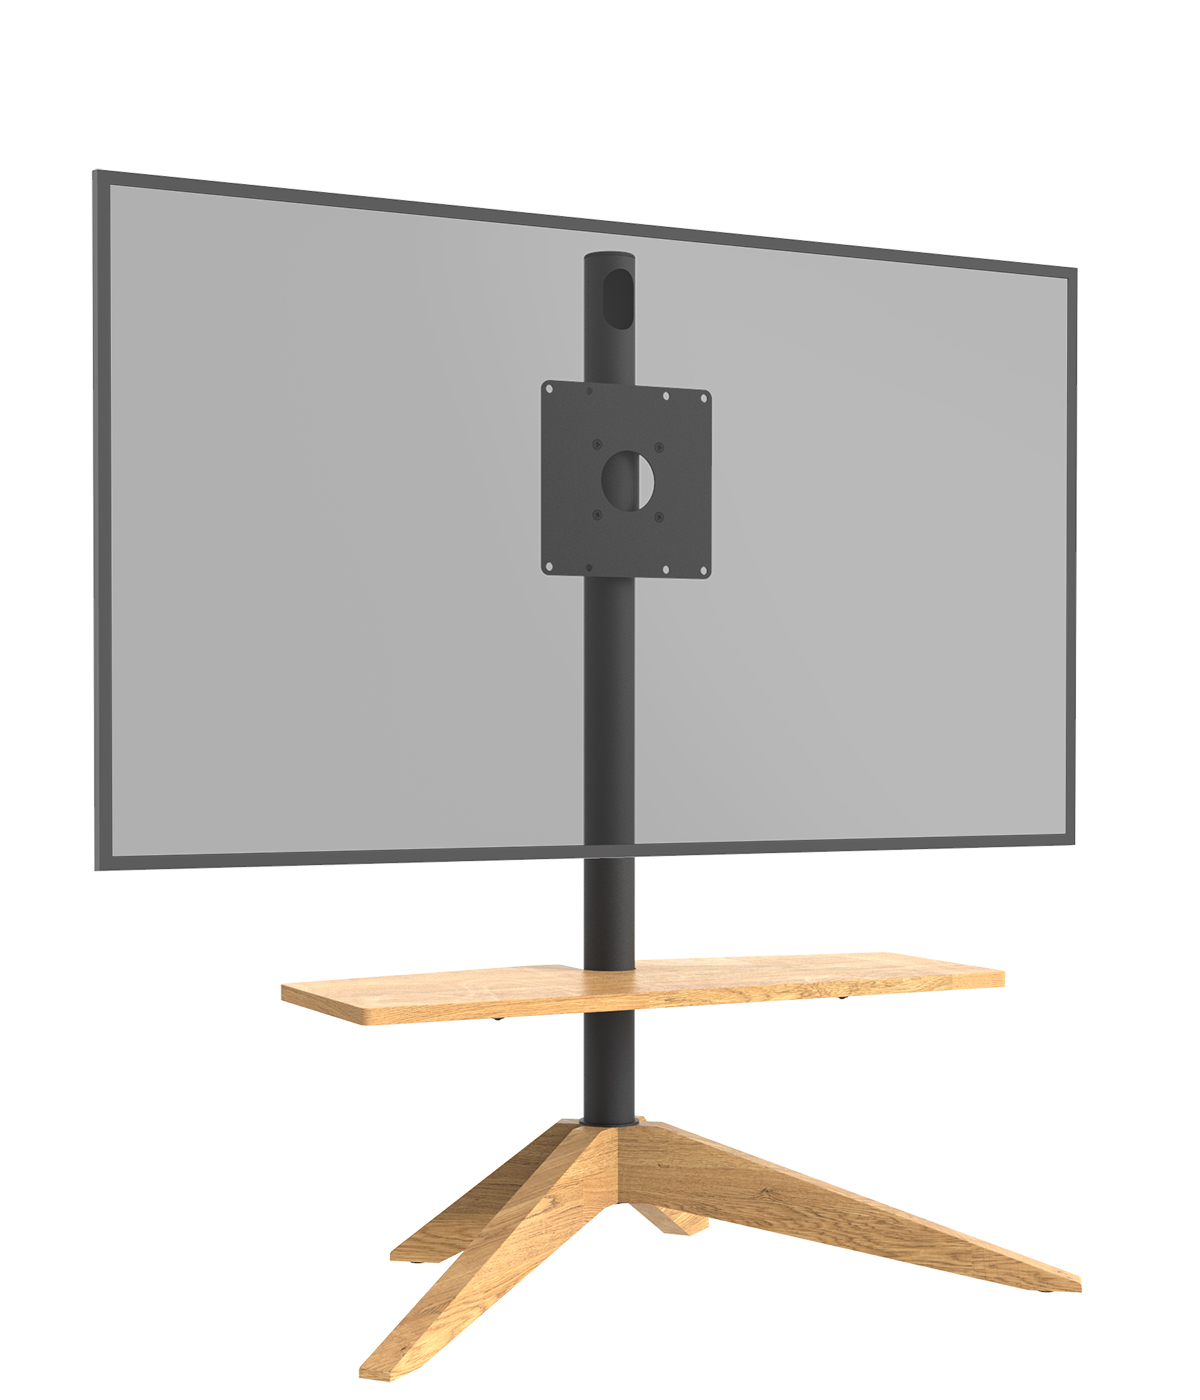 Cavus Tv vloerstandaard Cross Oak VESA 200x200